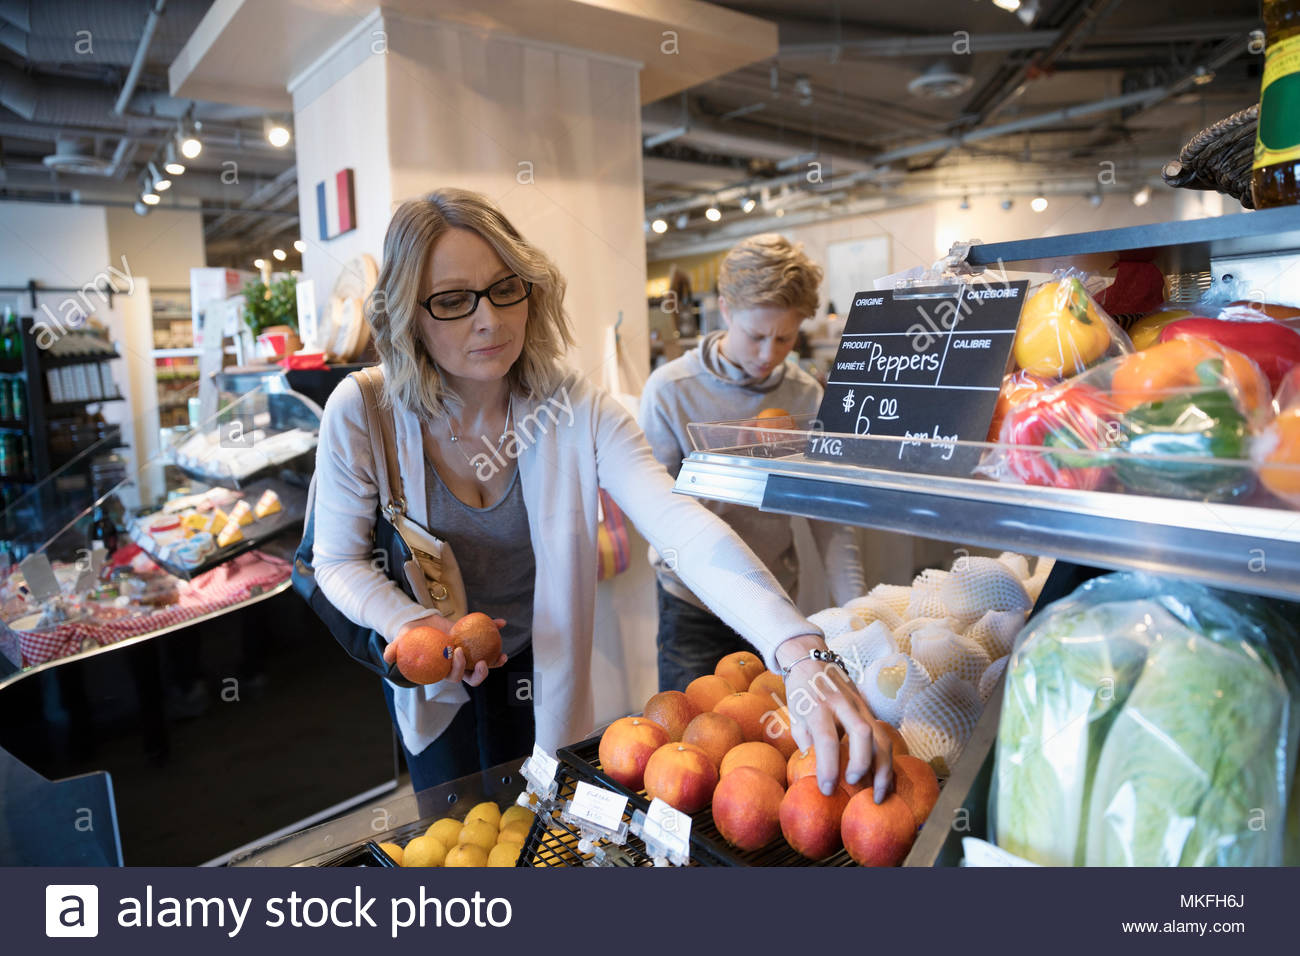 Woman grocery shopping, picking out oranges in market - Stock Image